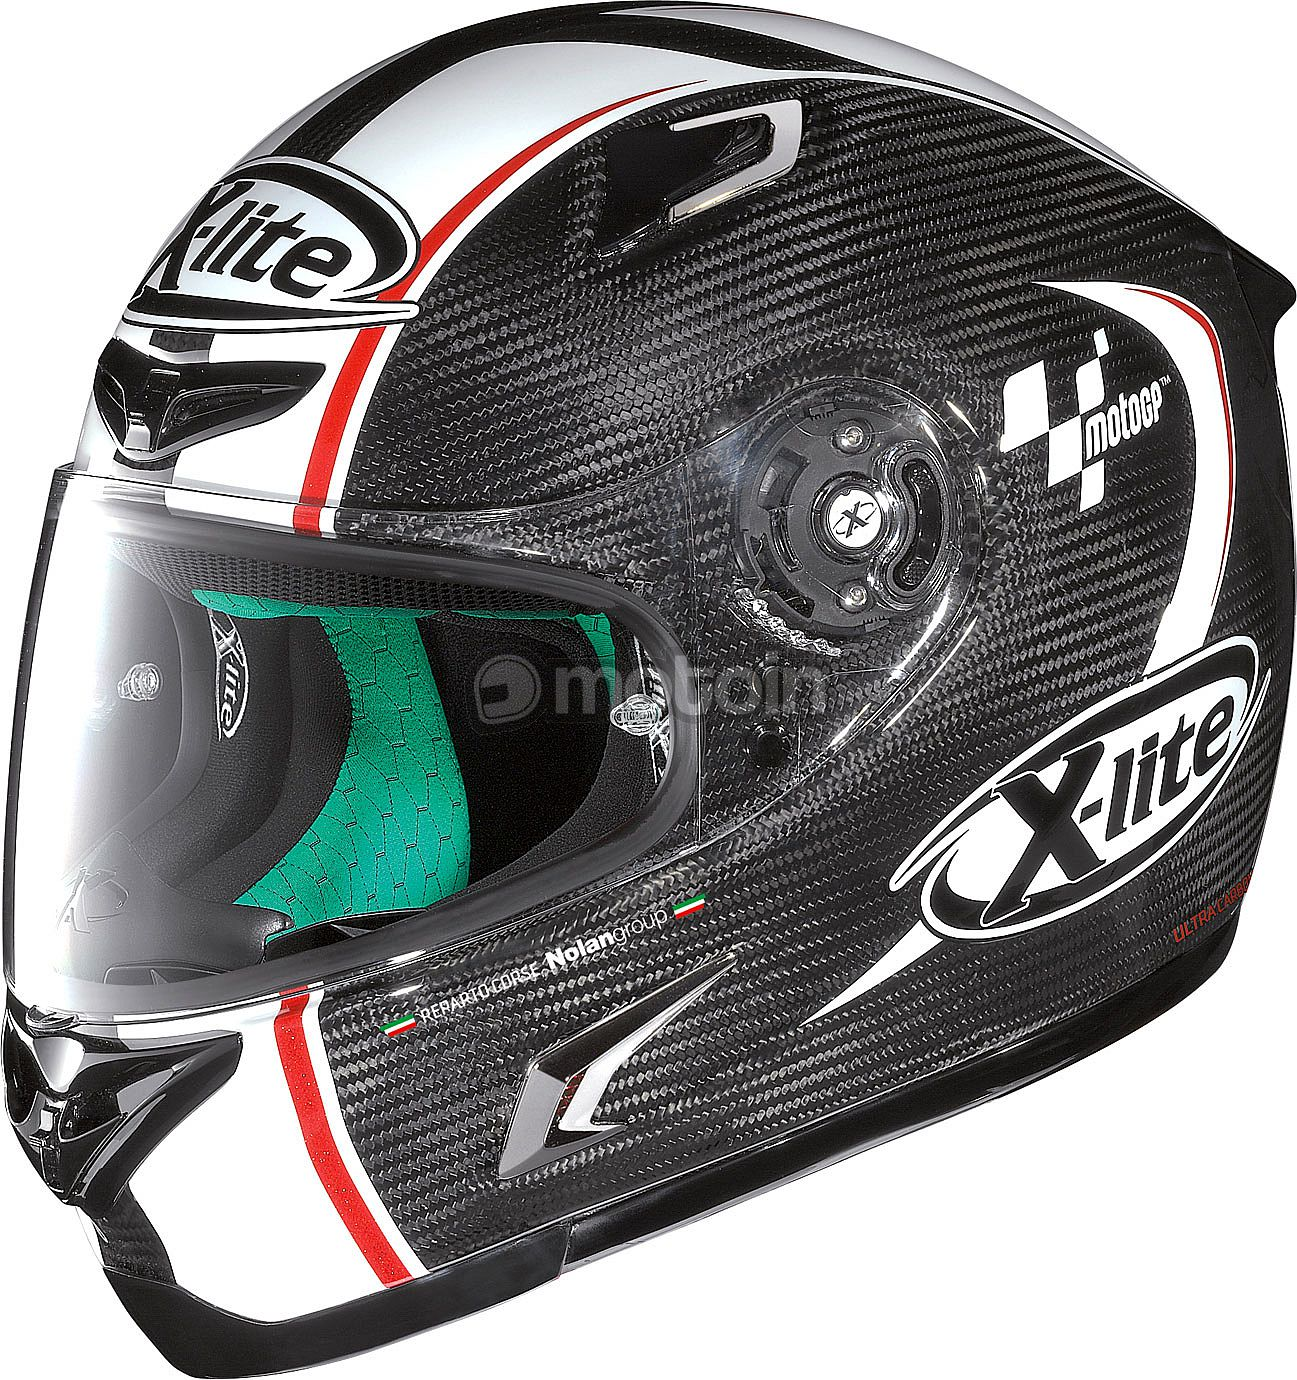 x lite x 802rr ultra carbon motogp integralhelm. Black Bedroom Furniture Sets. Home Design Ideas